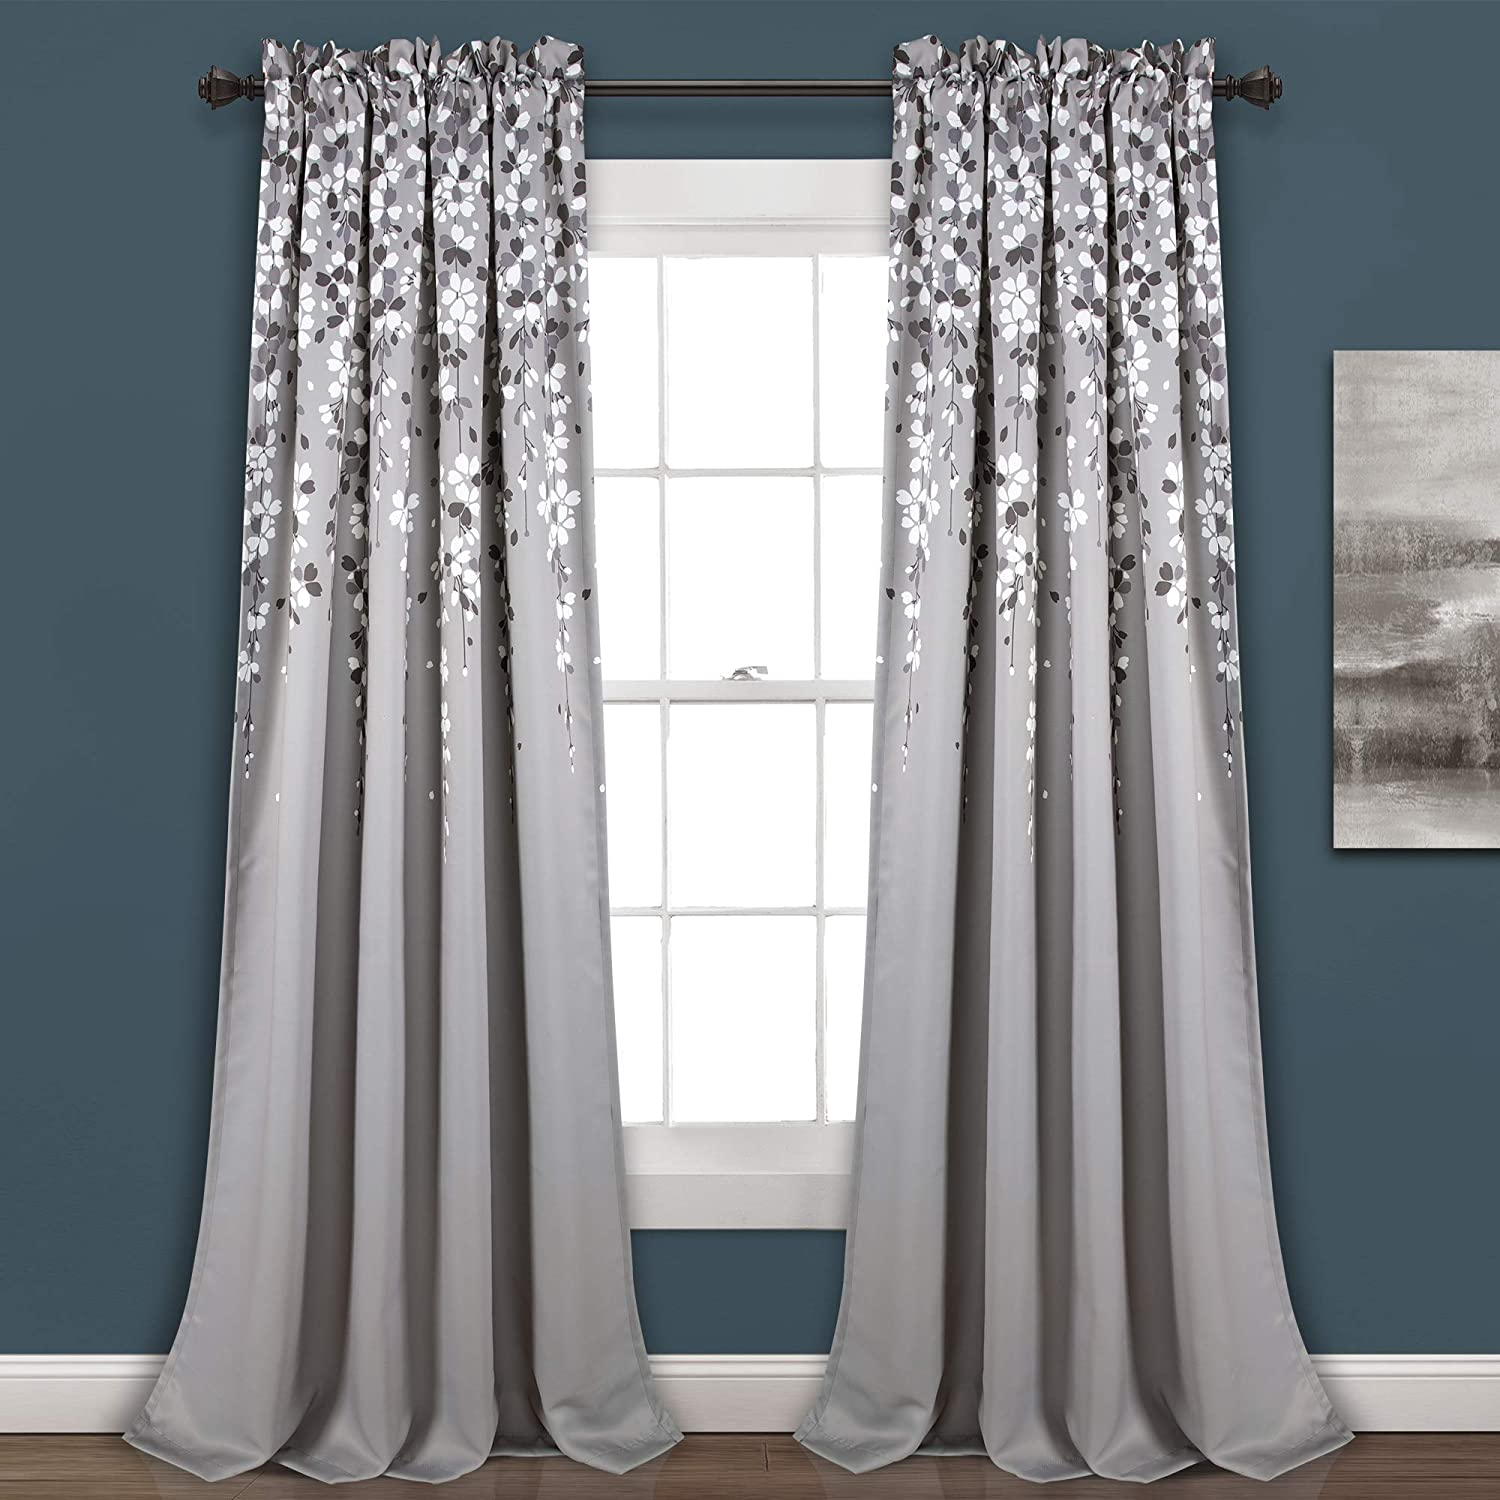 "Lush Decor, Gray Weeping Flowers Room Darkening Window Panel Curtain Set (Pair), 95"" x 52, 95"